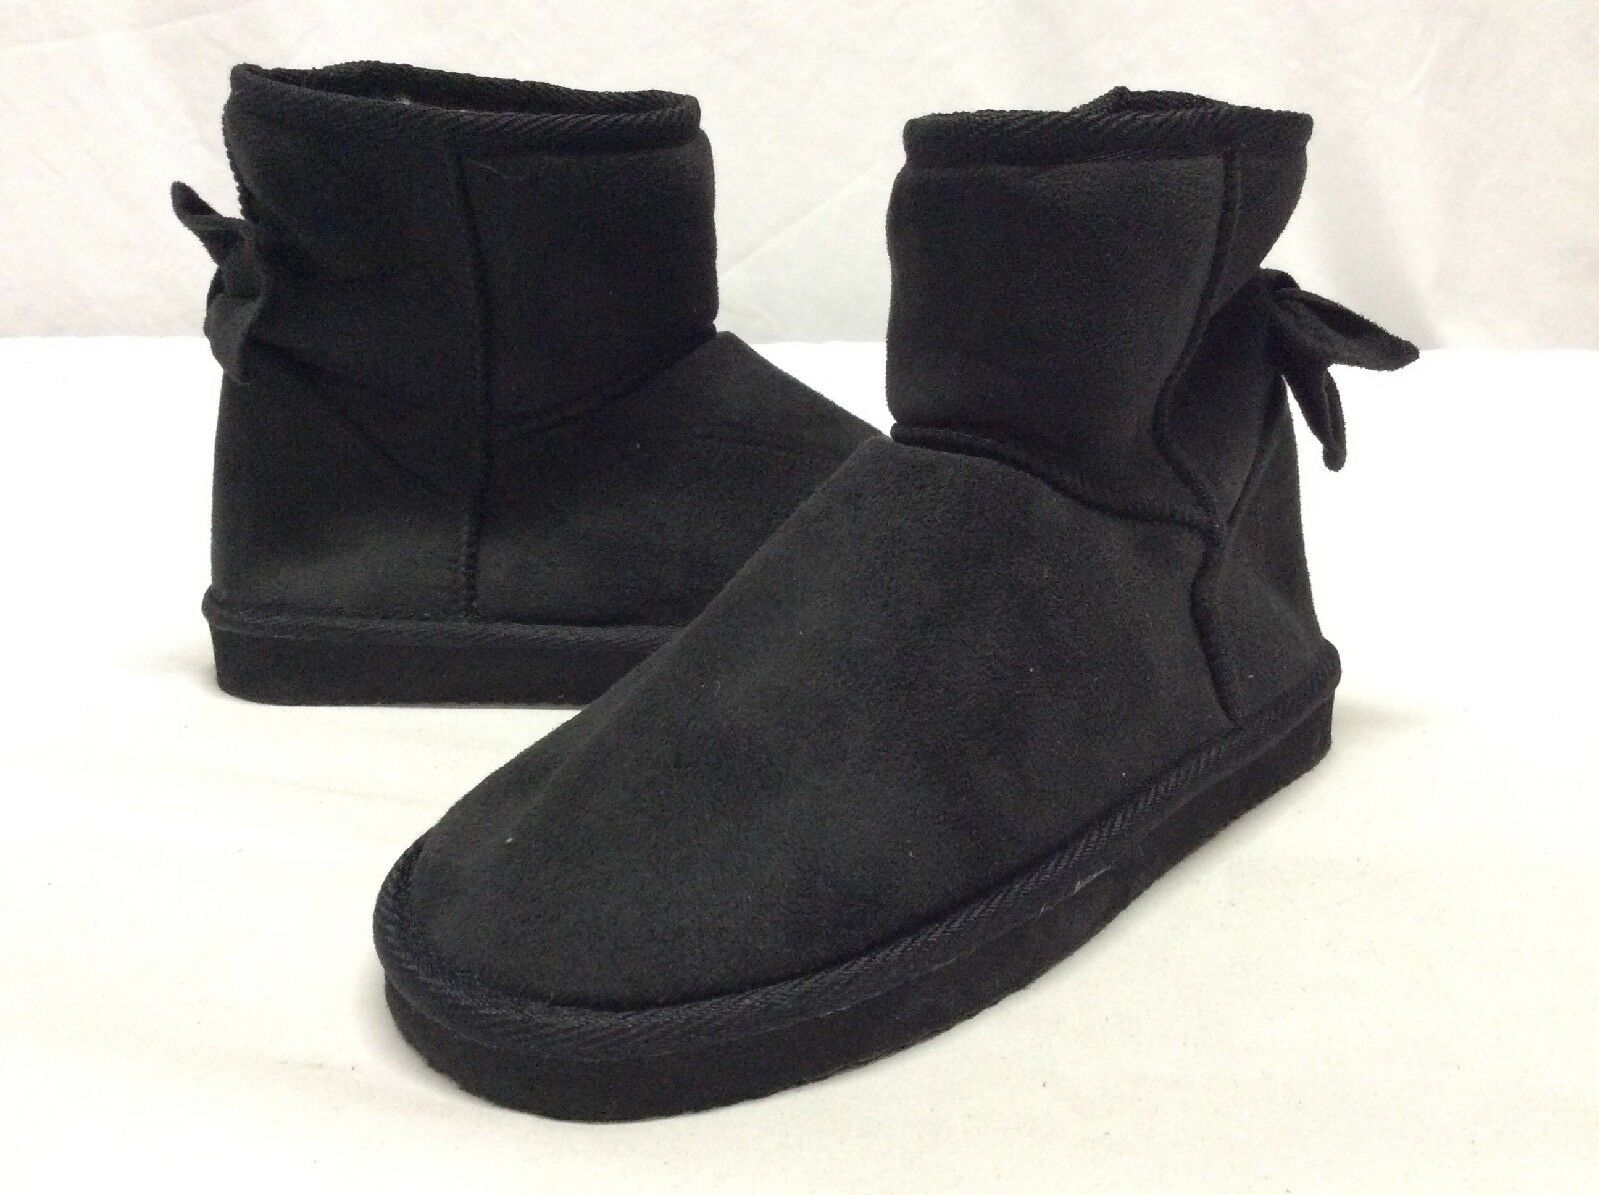 Clabel CUPCAKE Women's Winter Slipper Boots, 341 Retail.Black,Size US 5.5 ..Bot1